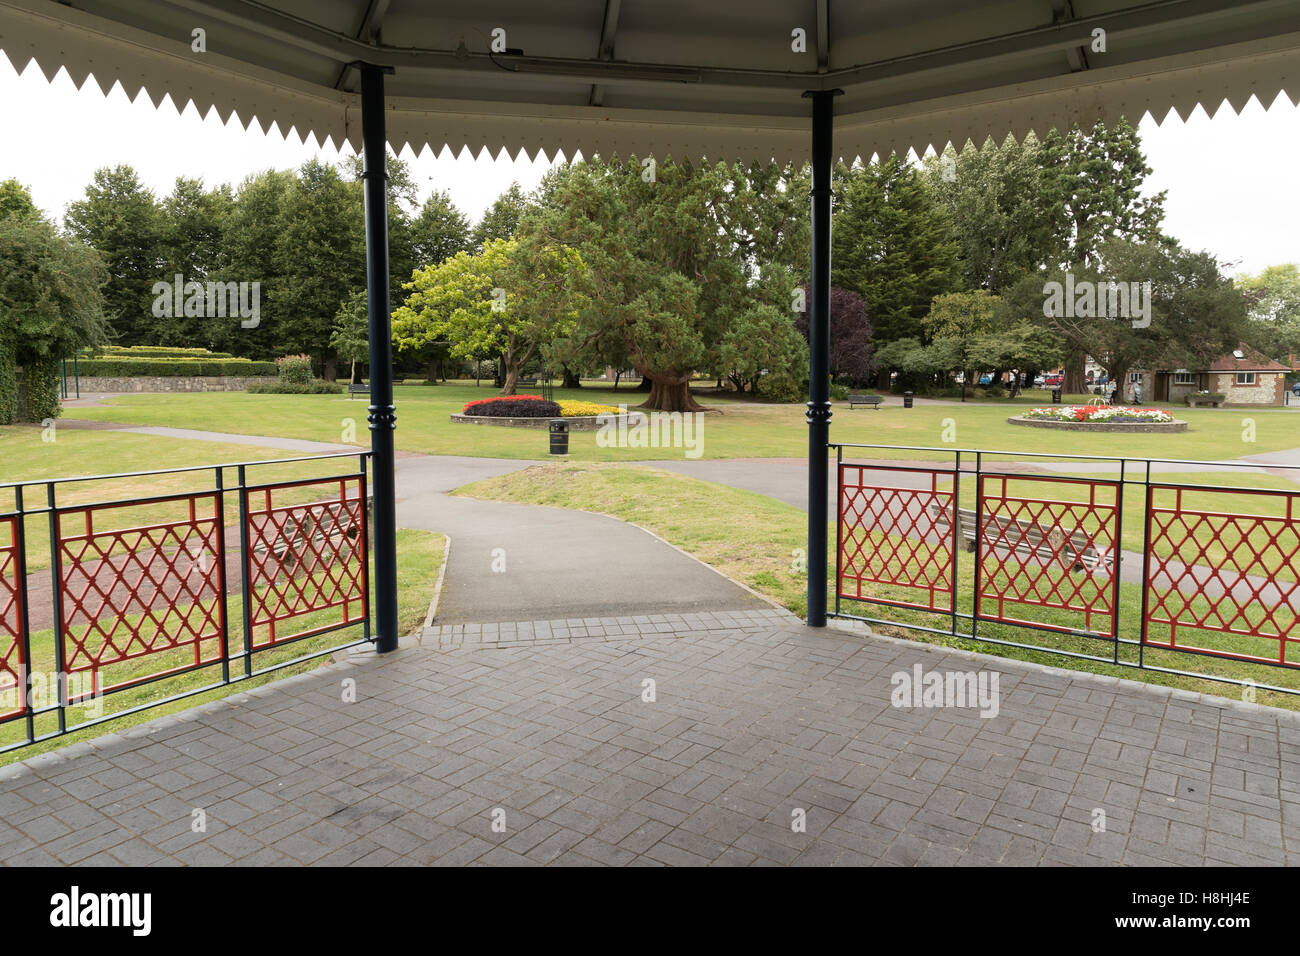 A view from inside the bandstand in Alton town park in Hampshire. - Stock Image